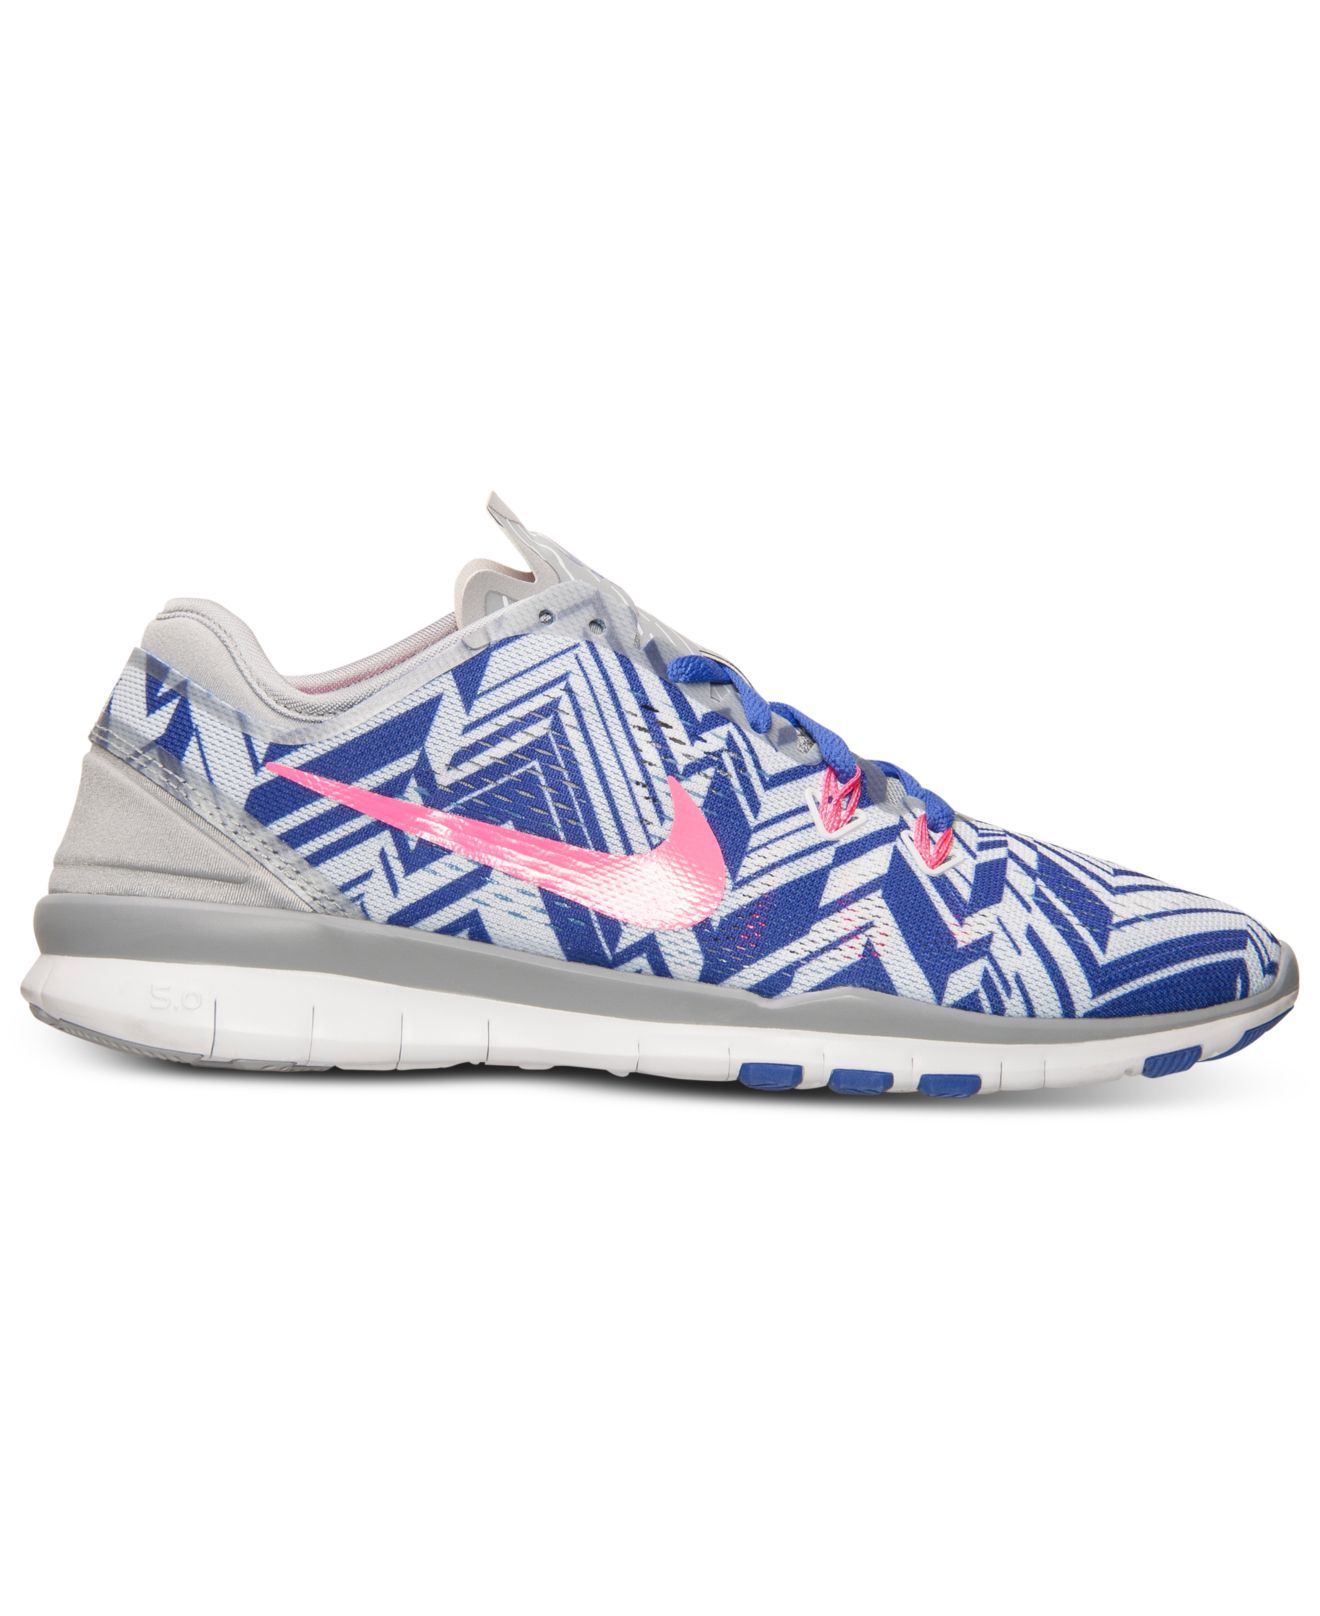 e4d504815bb6d ... purchase lyst nike womens free 5.0 tr fit 5 print training sneakers  from ba338 c4fc1